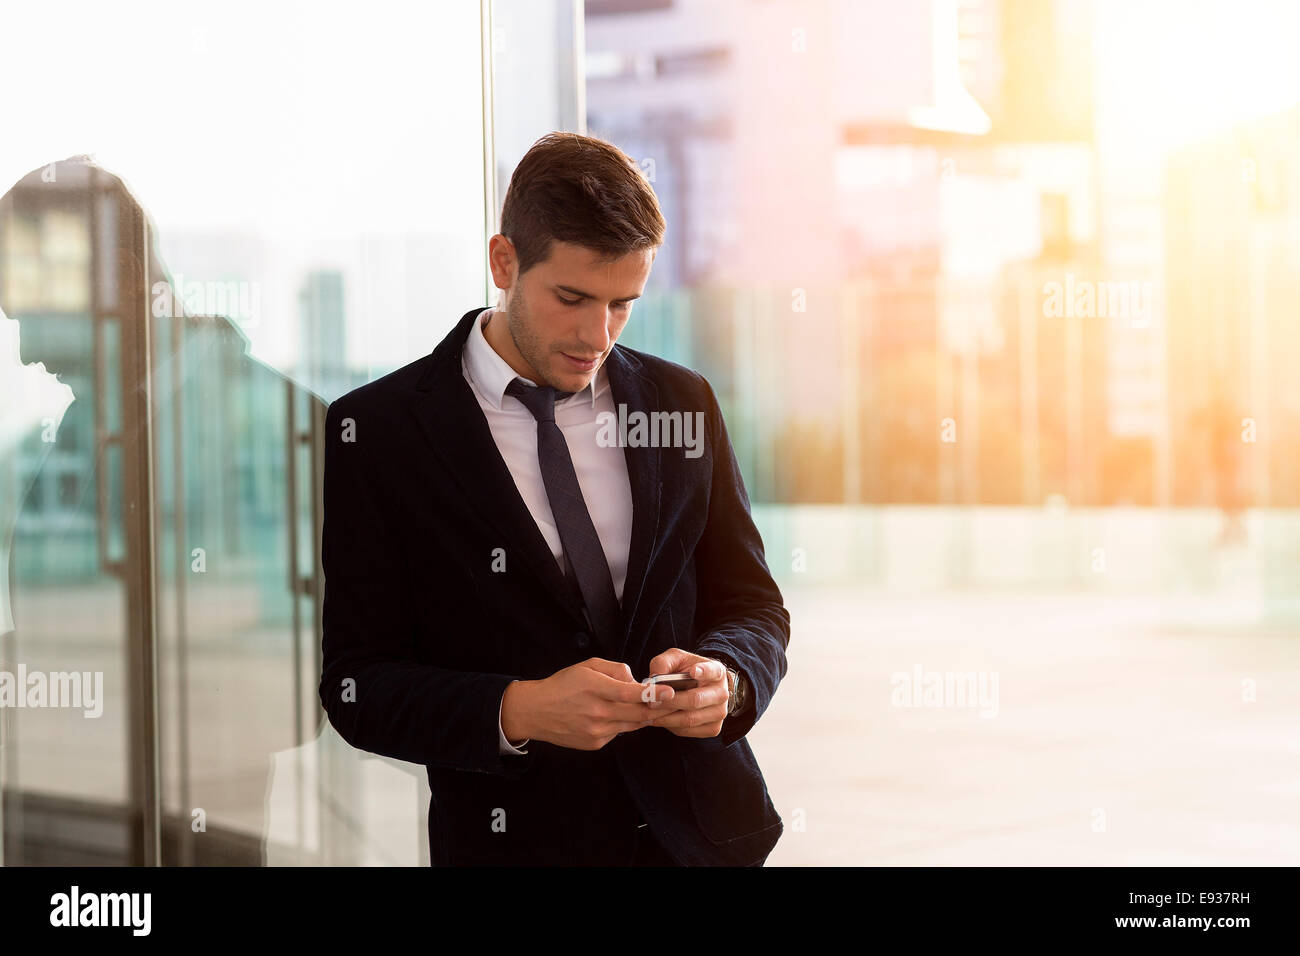 Businessman Using Mobile Phone Photo Stock